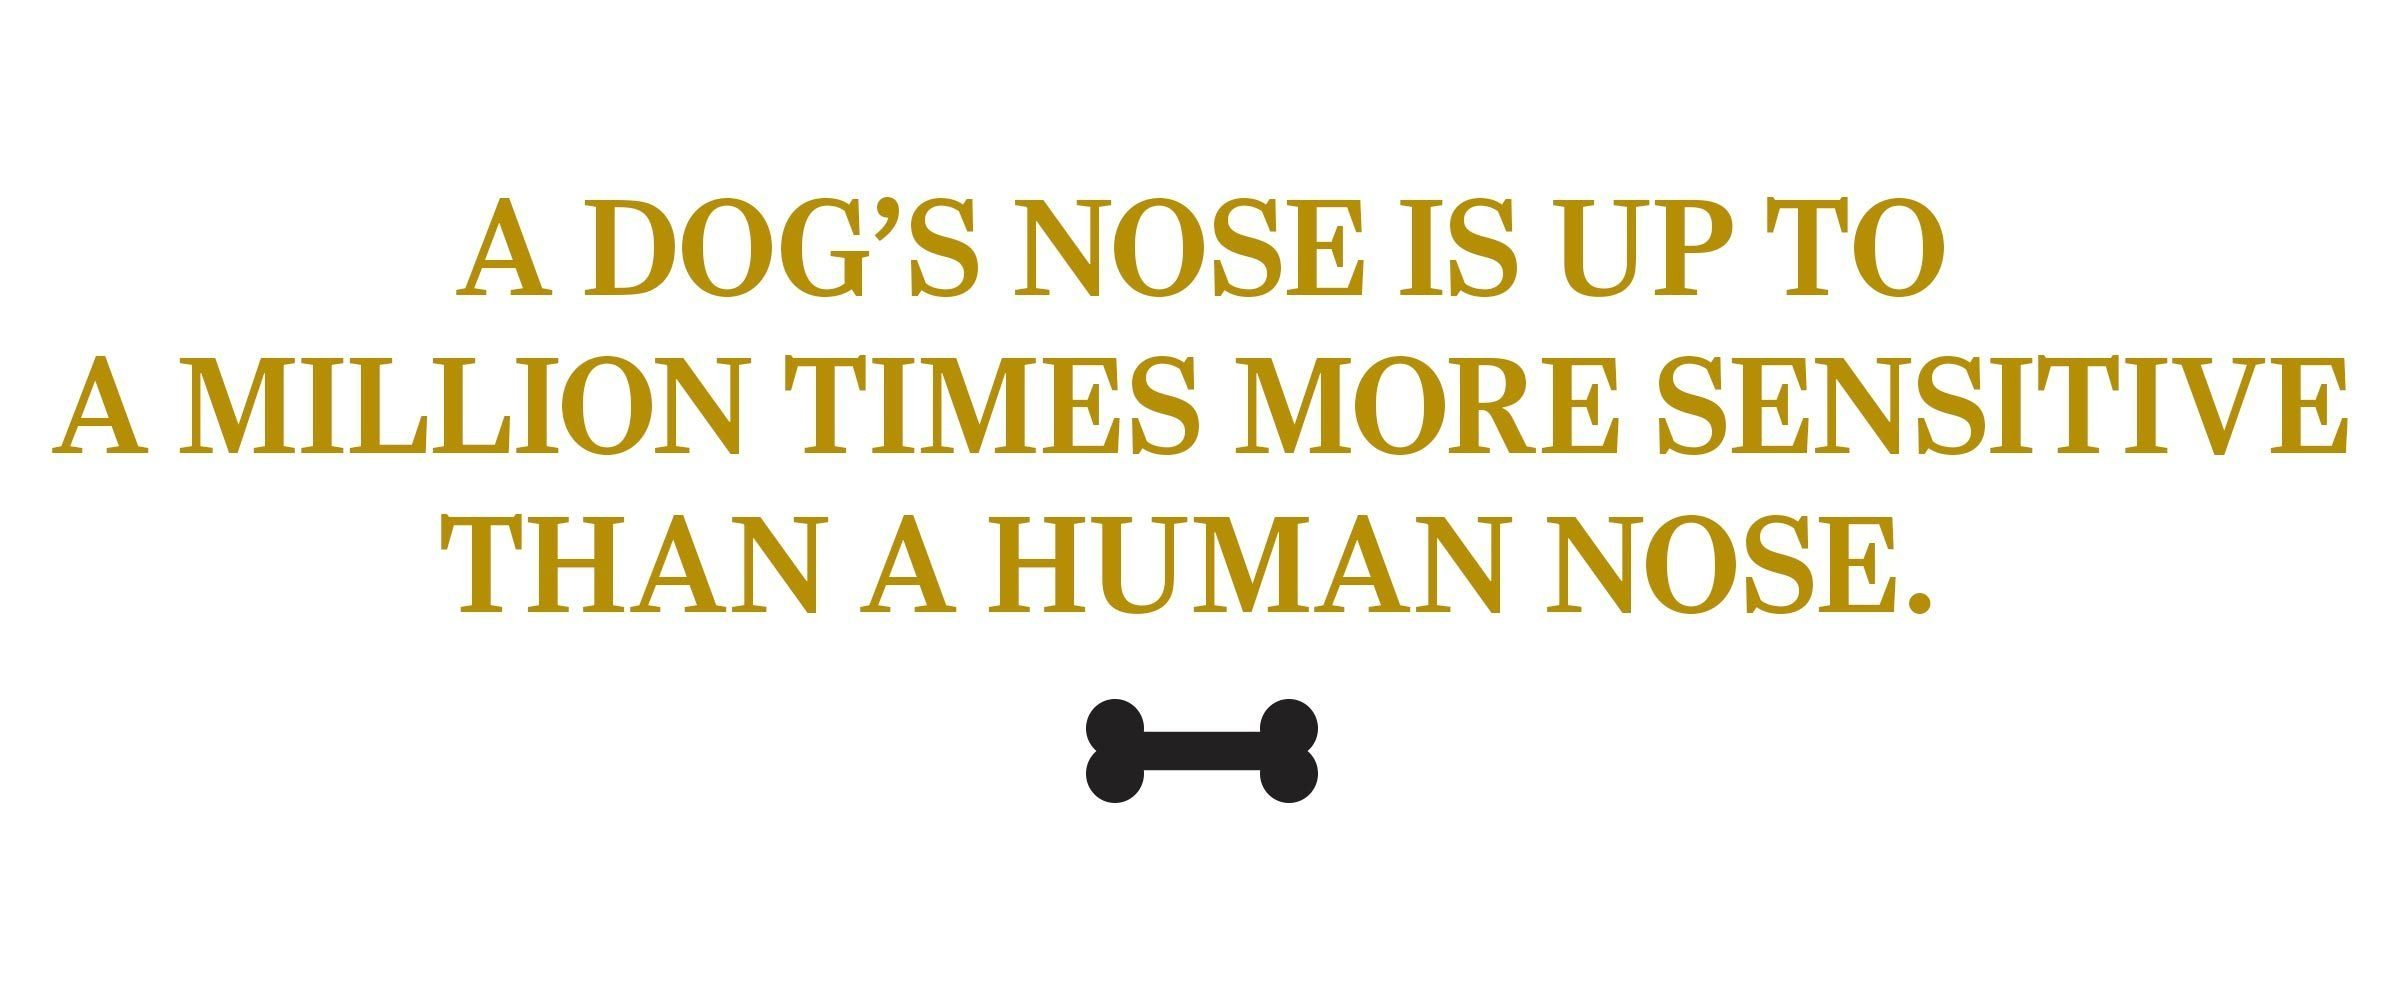 text: A dog's nose is up to a million times more sensitive than a human nose.